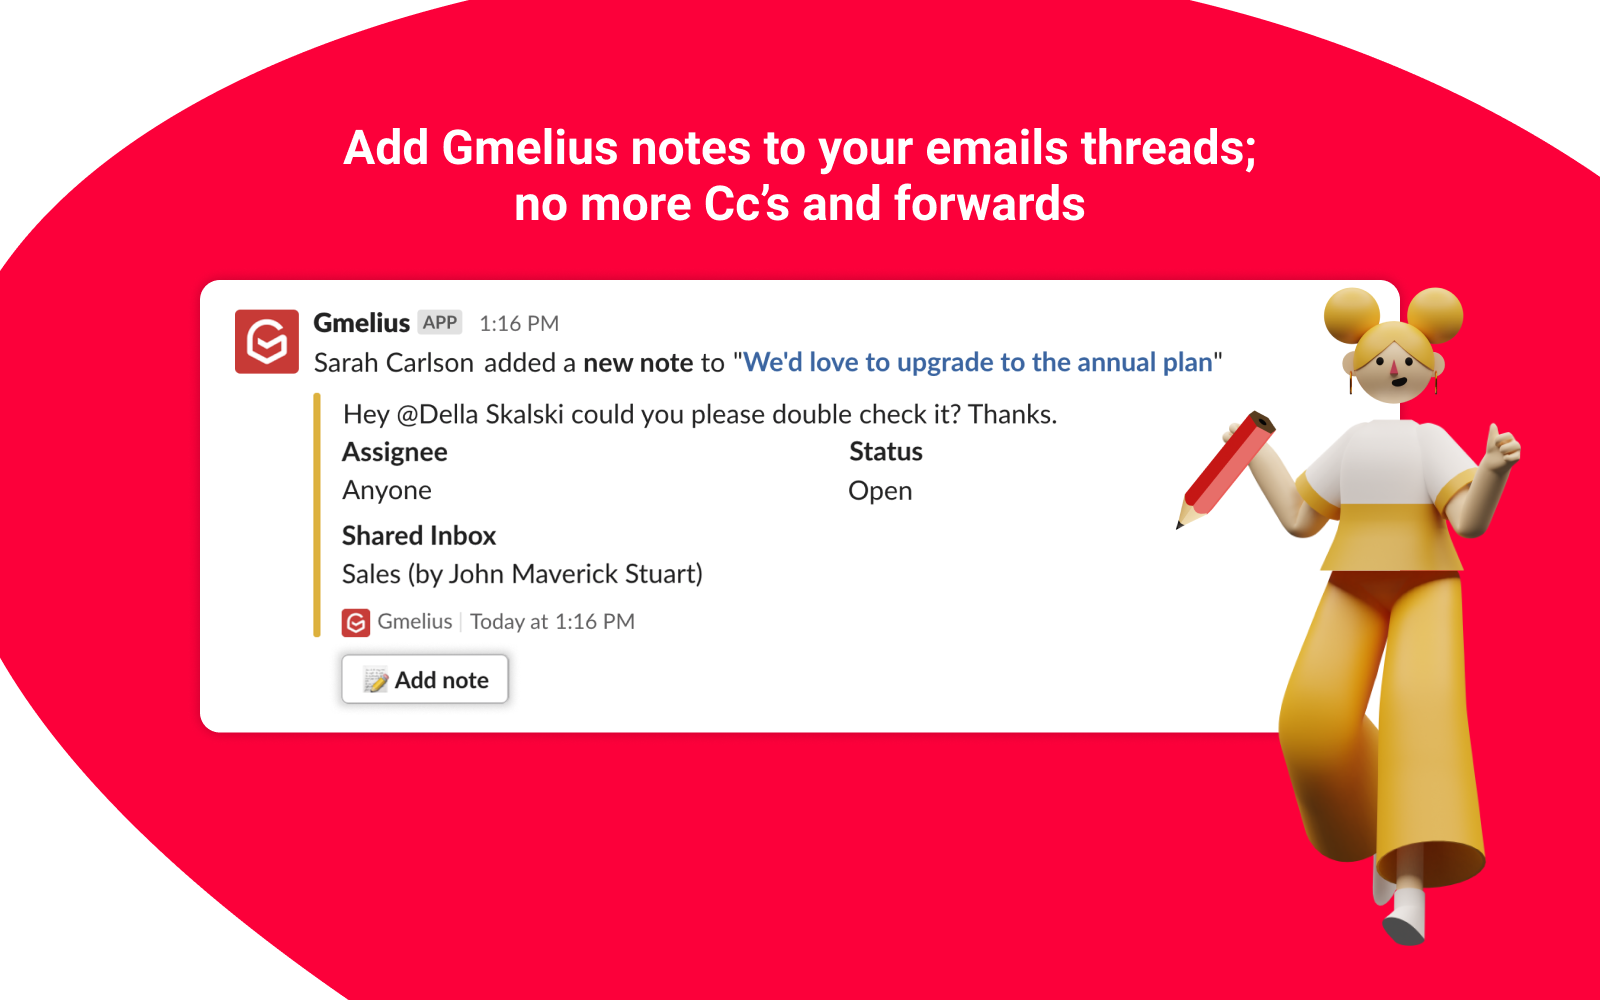 add Gmelius notes in Slack